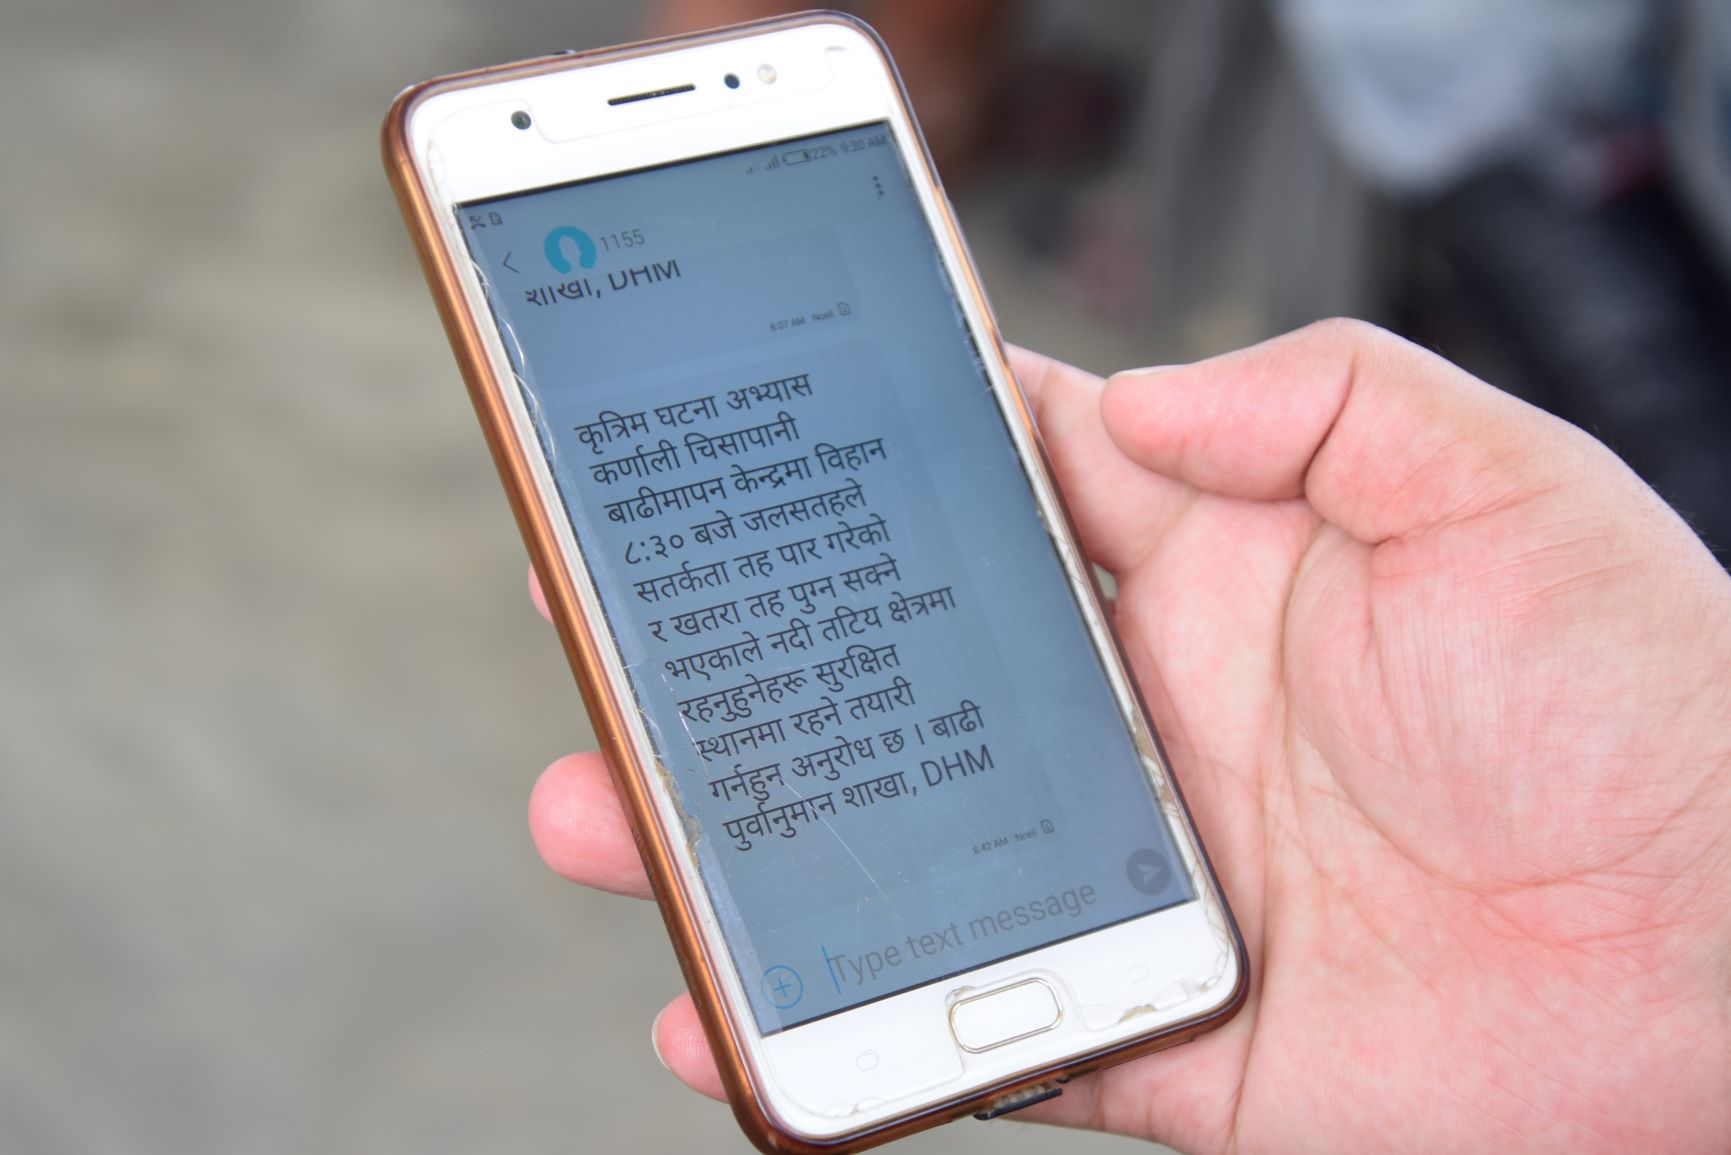 Flood early warning message in Nepalese. Existing systems can be used to share information and advice around COVID-19. By Archana Gurung, Practical Action